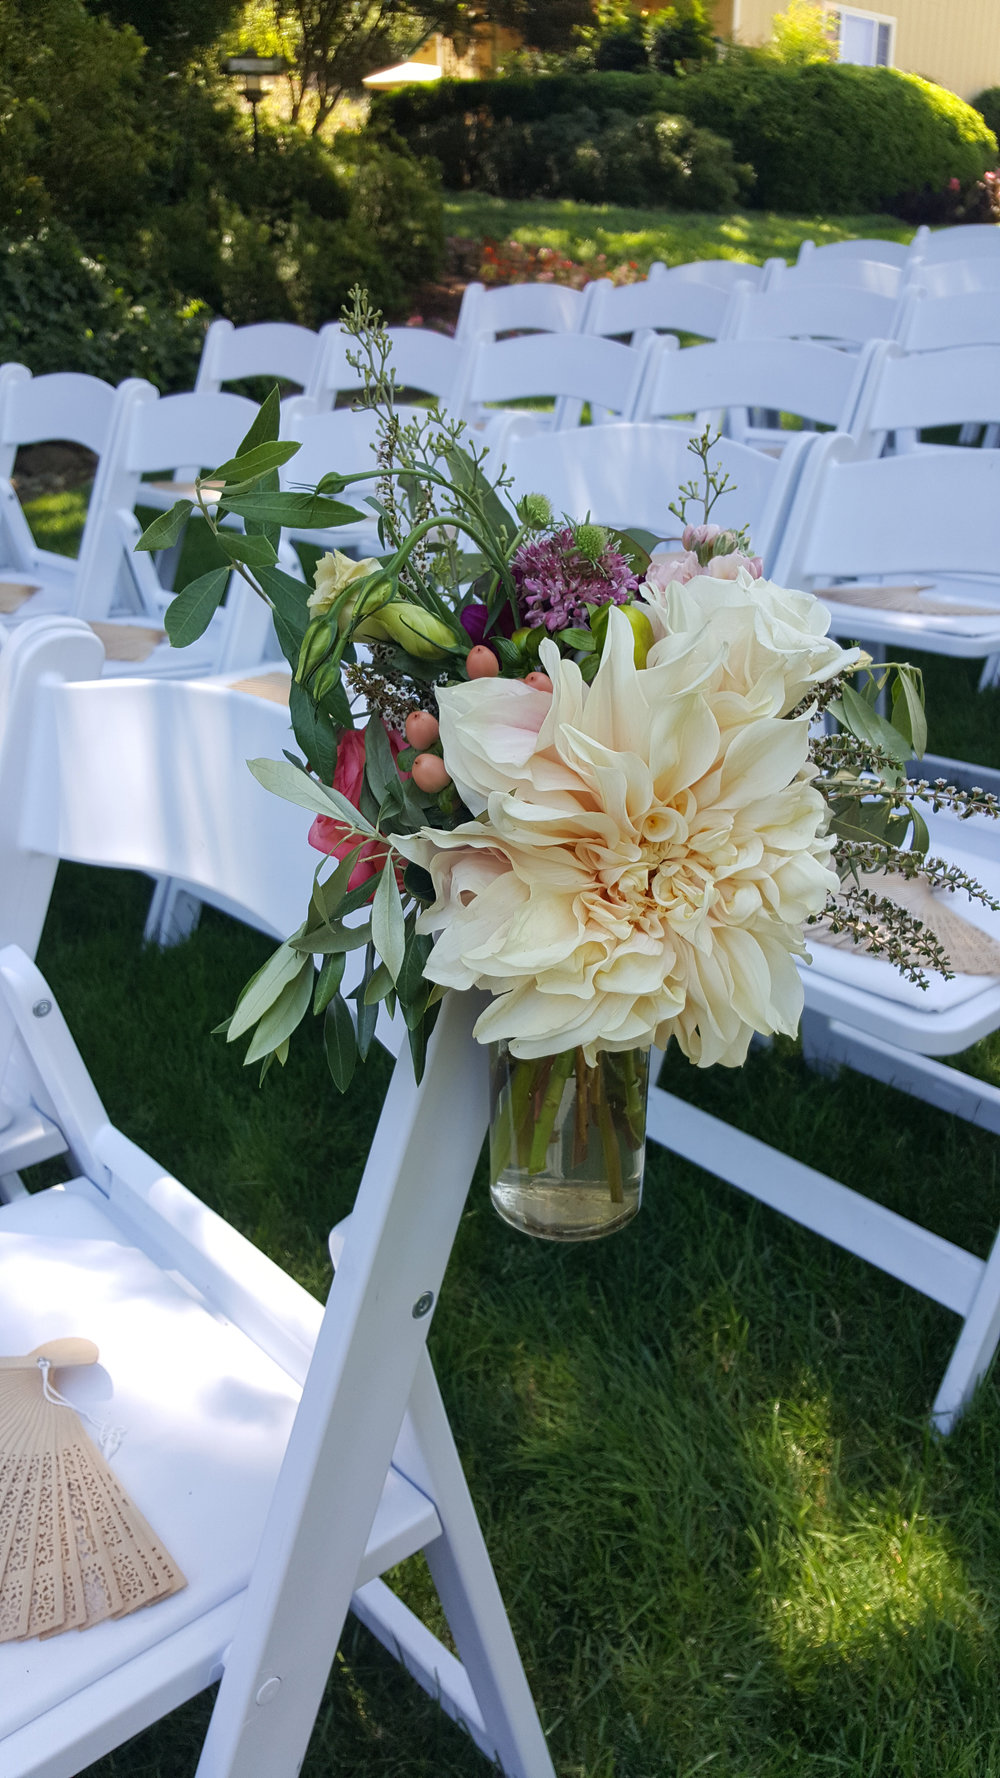 Mason jar tied to aisle with ribbon, dahlias and roses with eucalyptus, Aisle bouquet Sonoma wedding. Highlands Estate wedding ceremony flowers